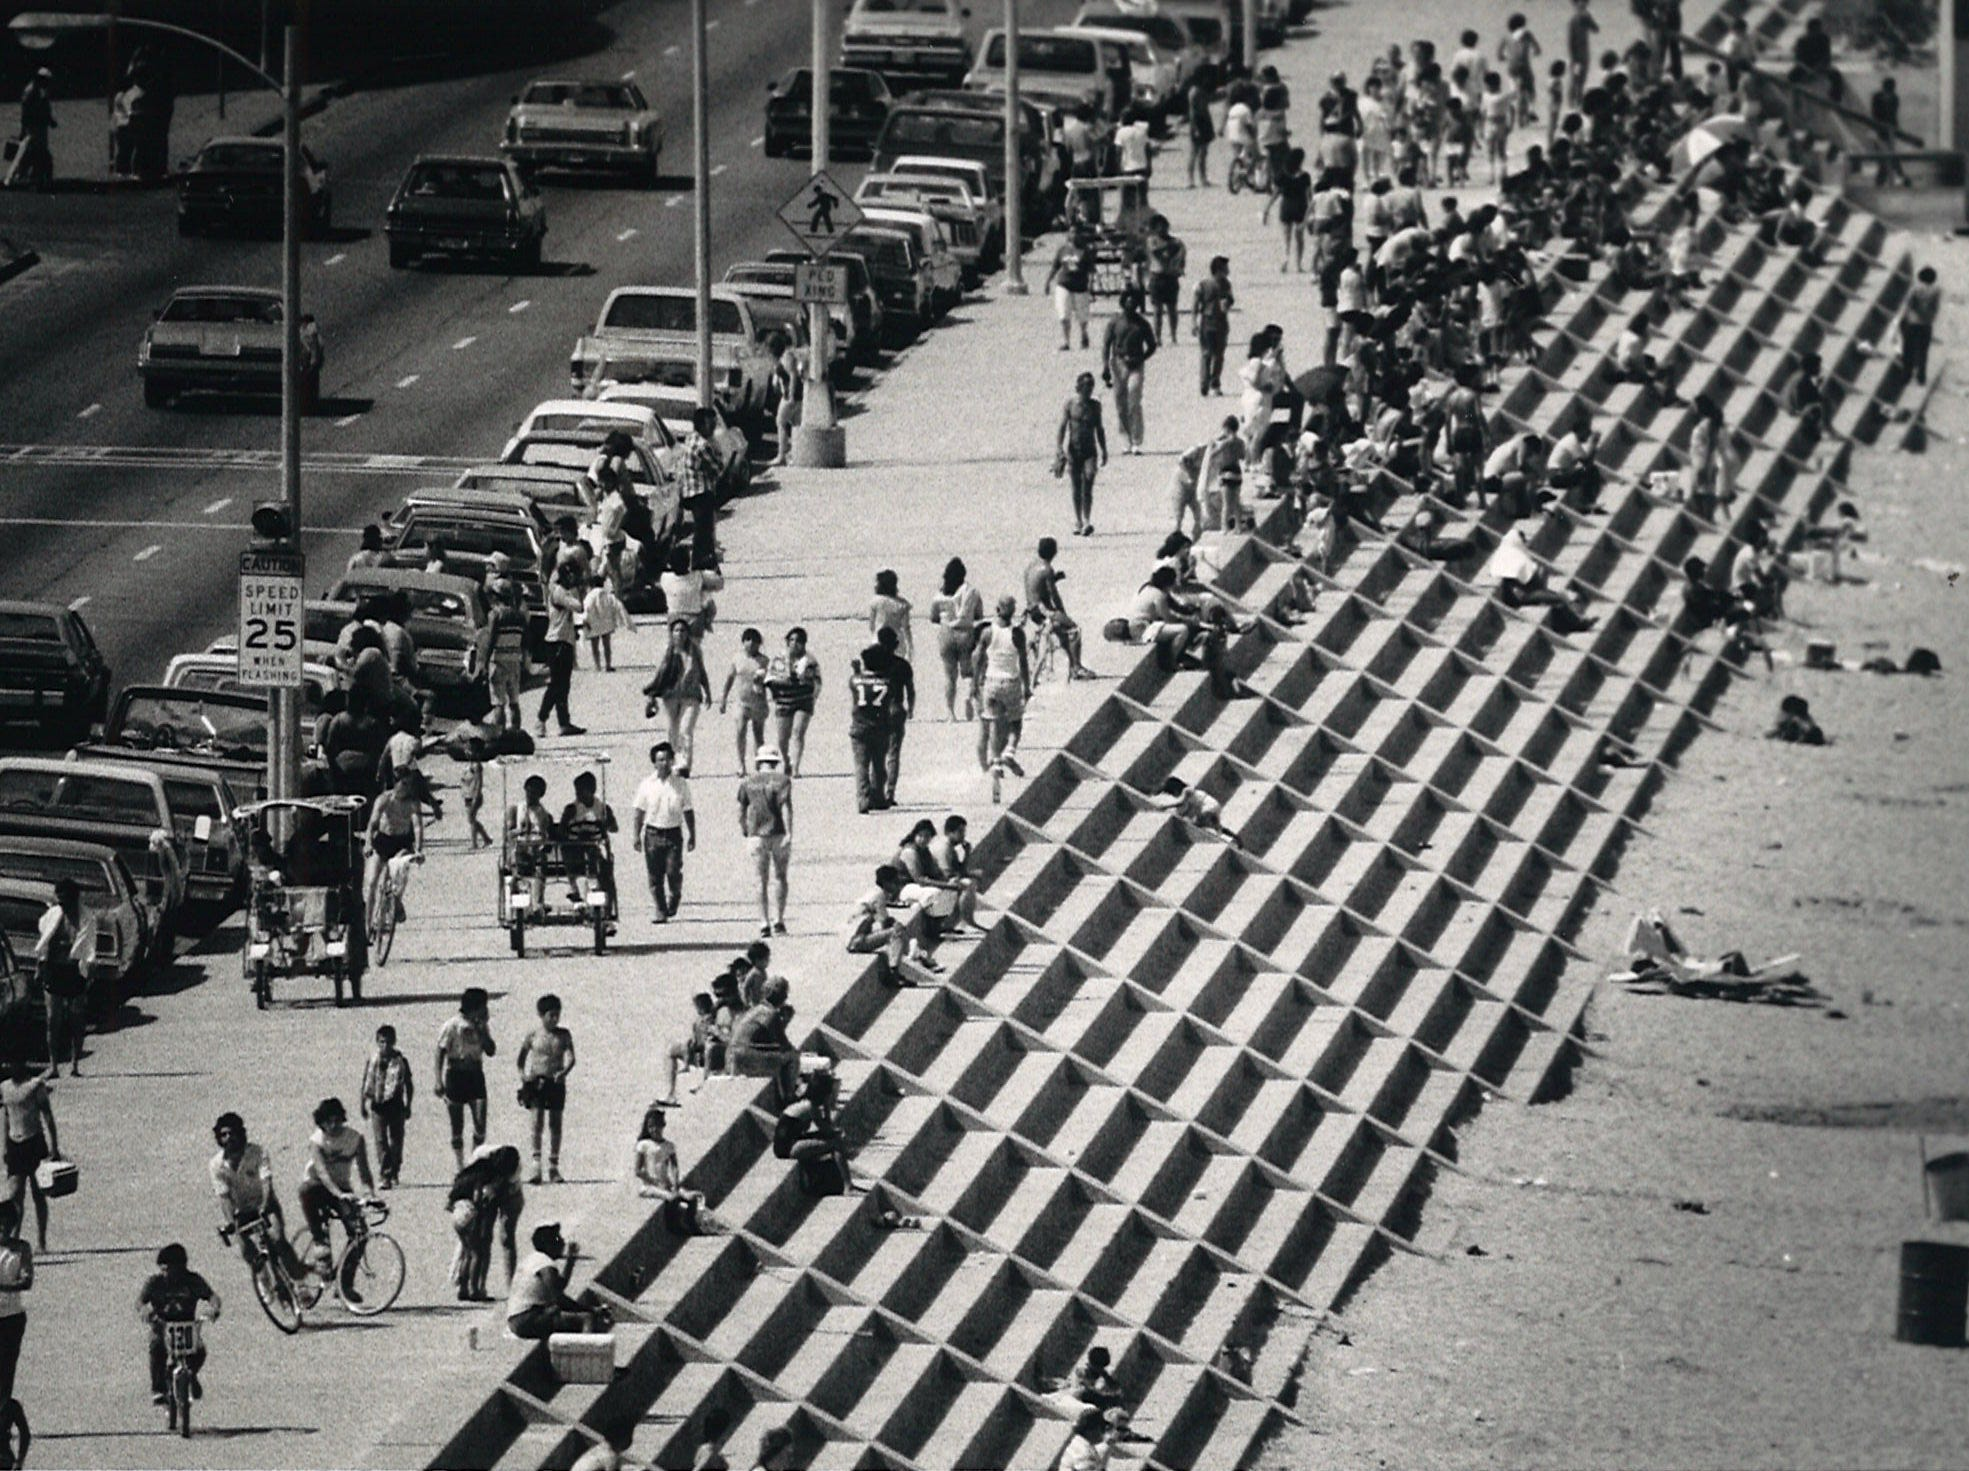 The crowd at McGee Beach in downtown Corpus Christi during Memorial Day weekend in 1984.